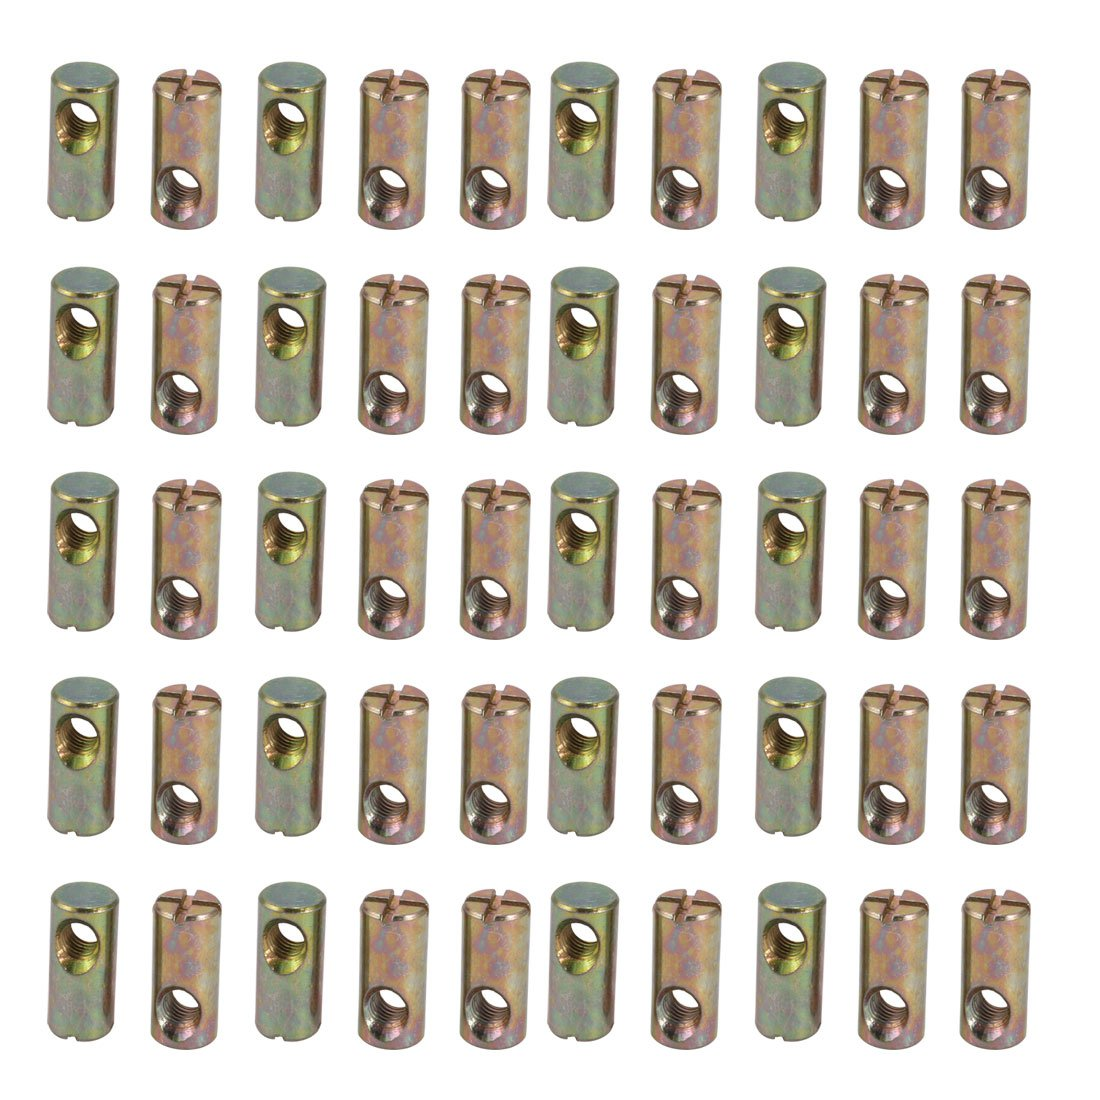 uxcell 40pcs M6 Thread Dia 22mm Length Iron Phillips Drive Cross Dowel Barrel Nut by uxcell